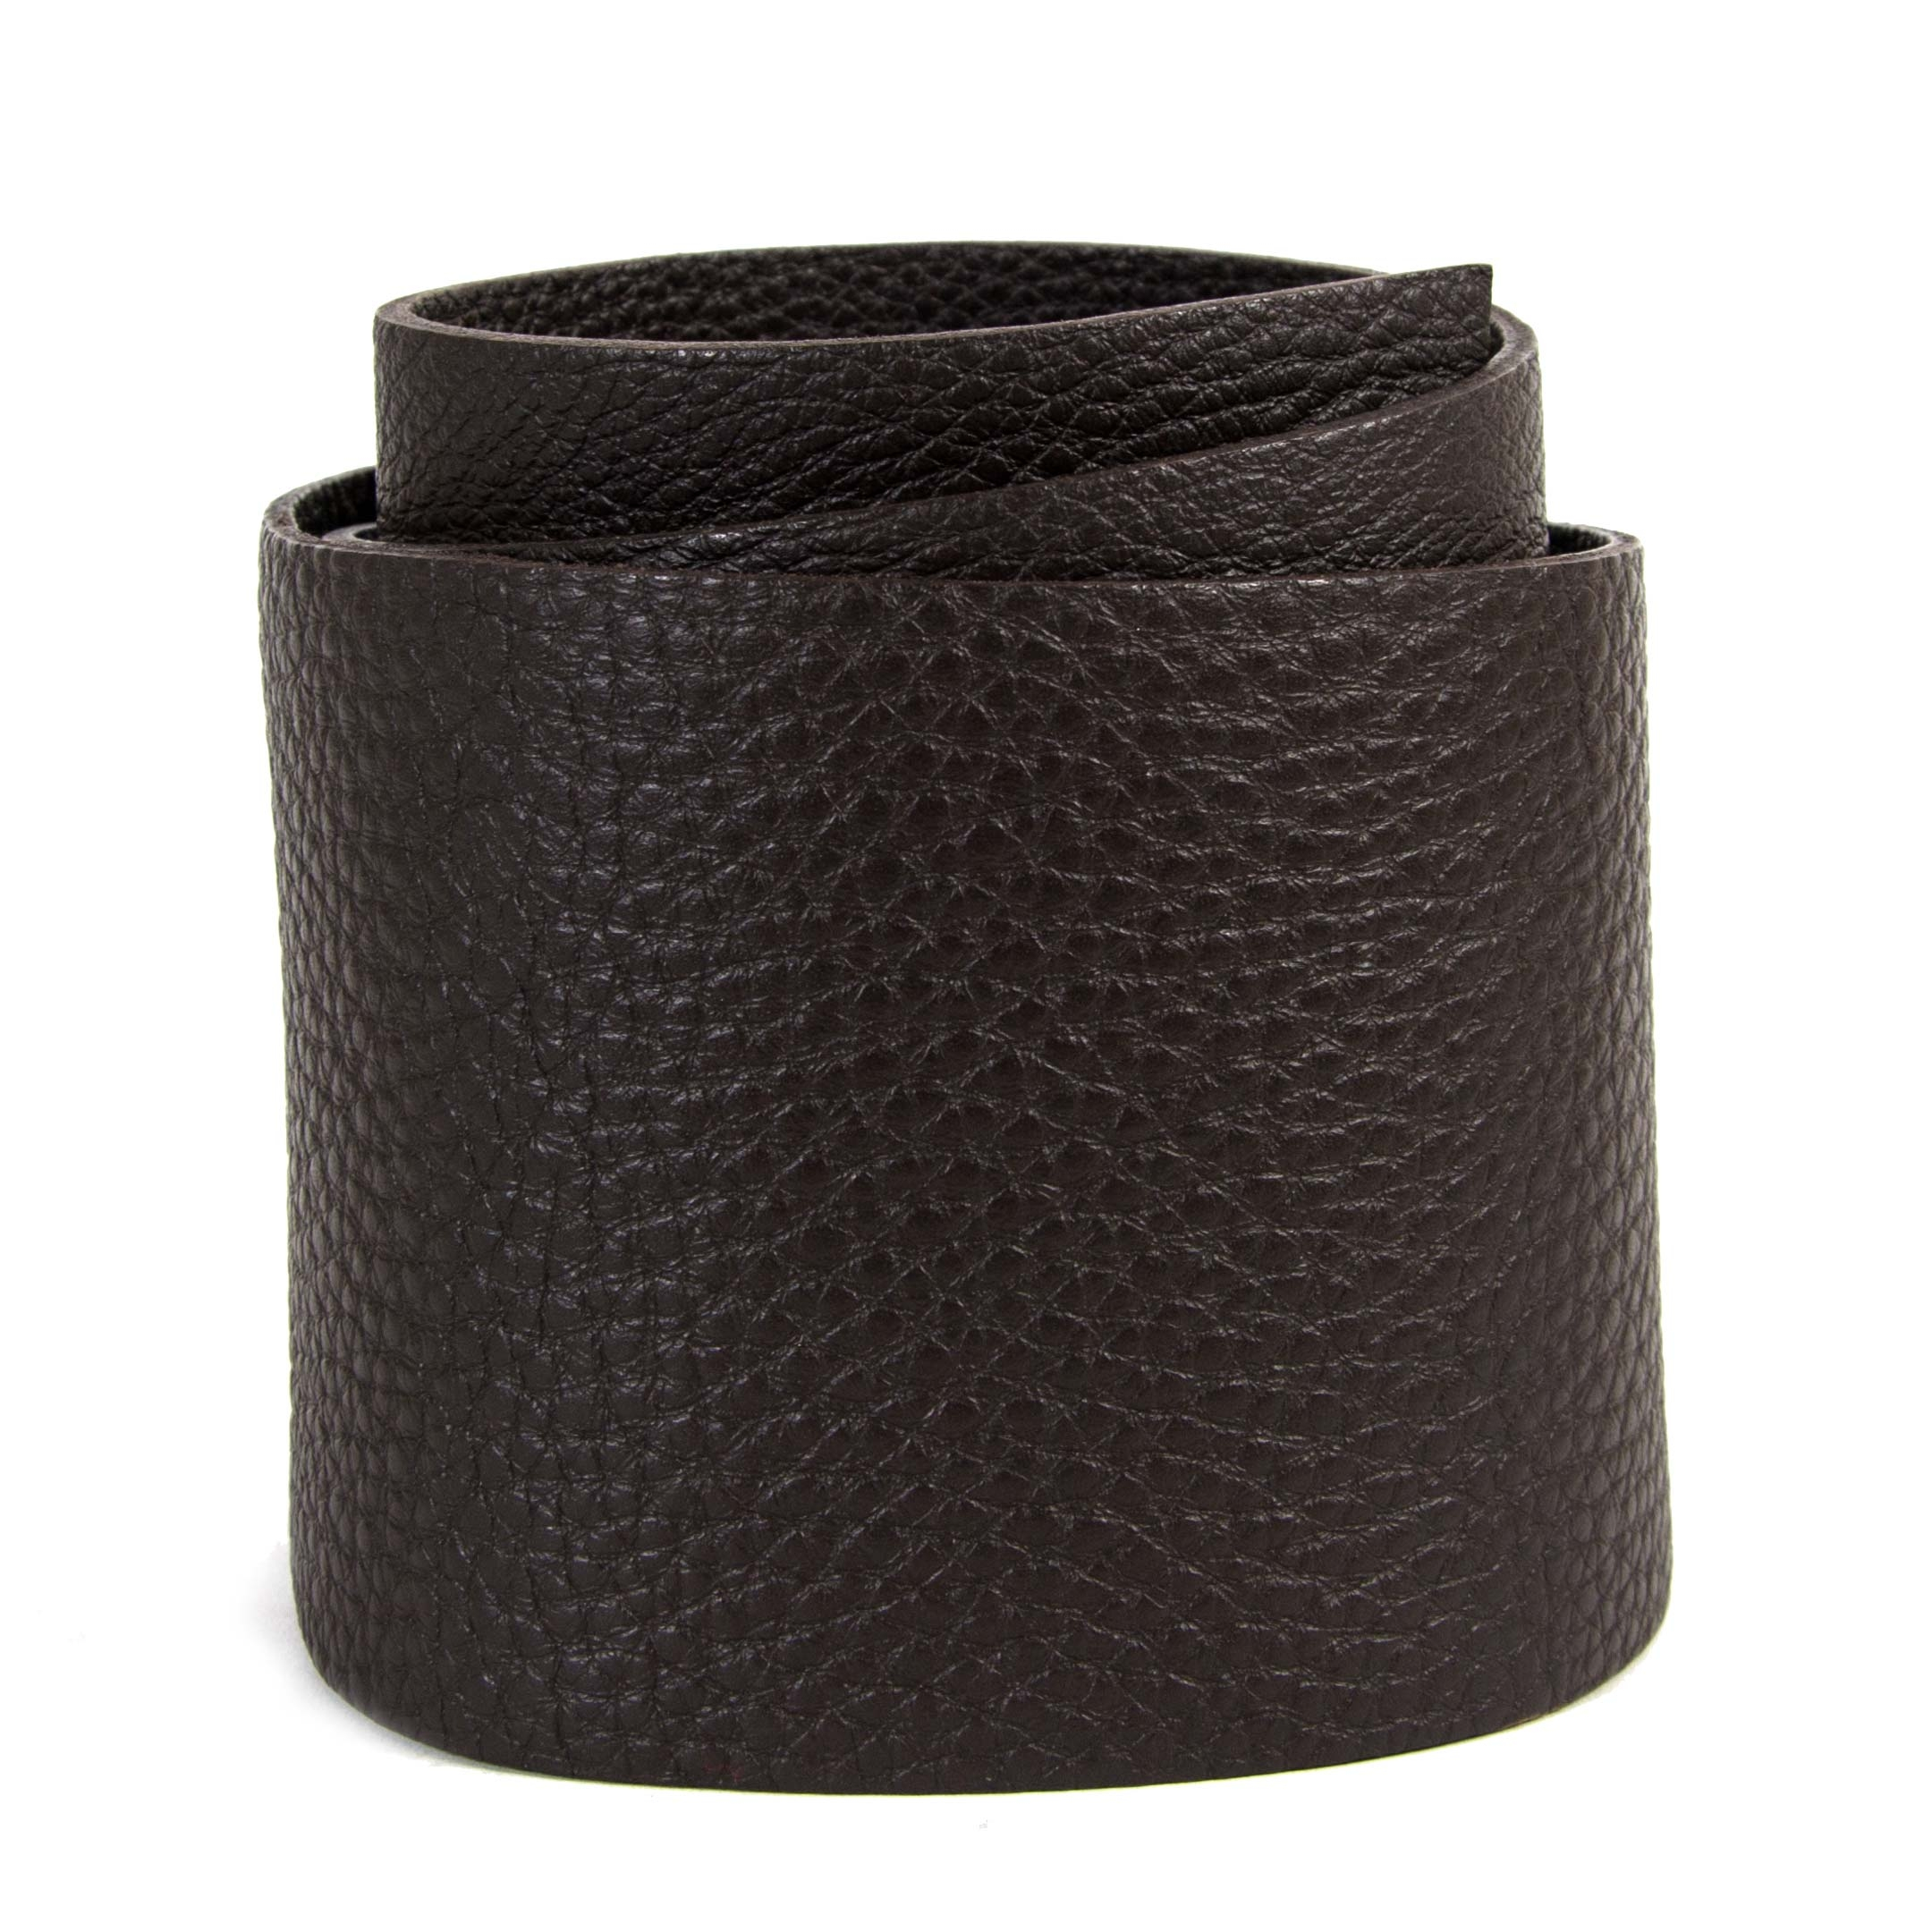 Miu Miu Oversized Leather Belt - Size 80 now for sale at labellov vintage fashion webshop belgium